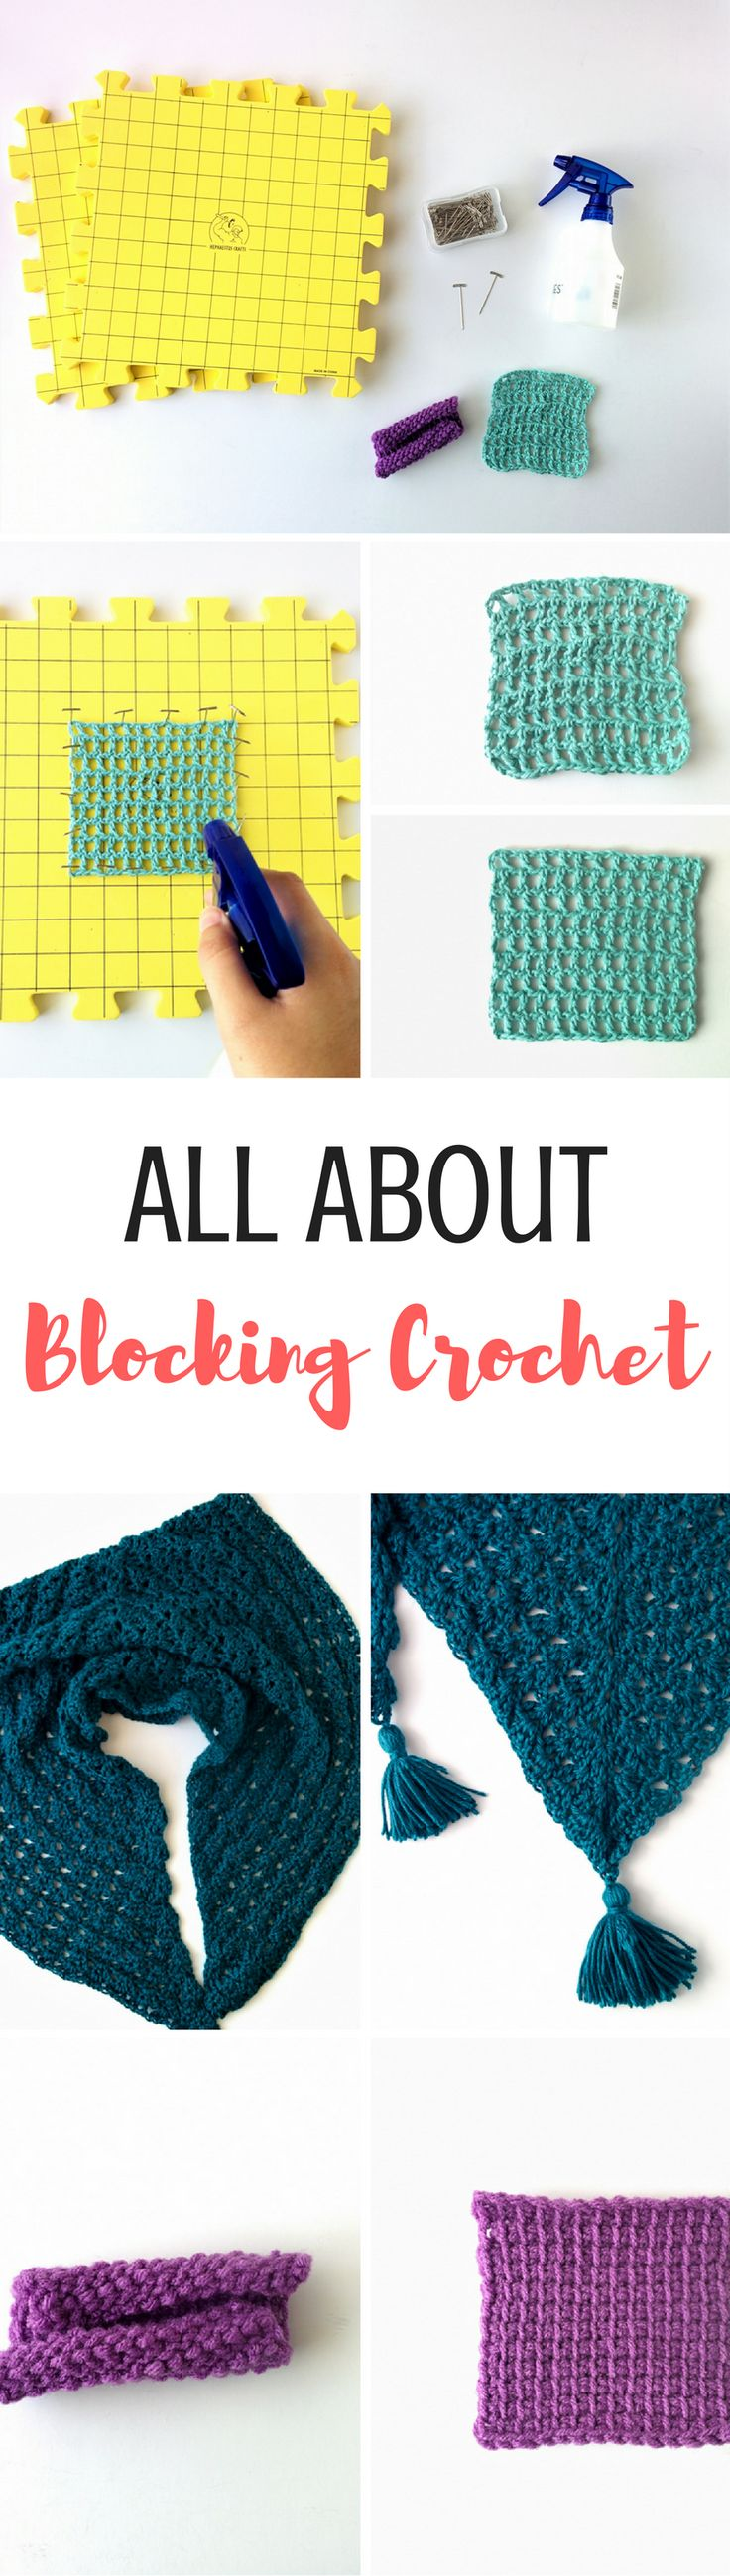 Unsure about blocking? Here's everything you need to know to get started blocking for finished, cleaner, more professional pieces.